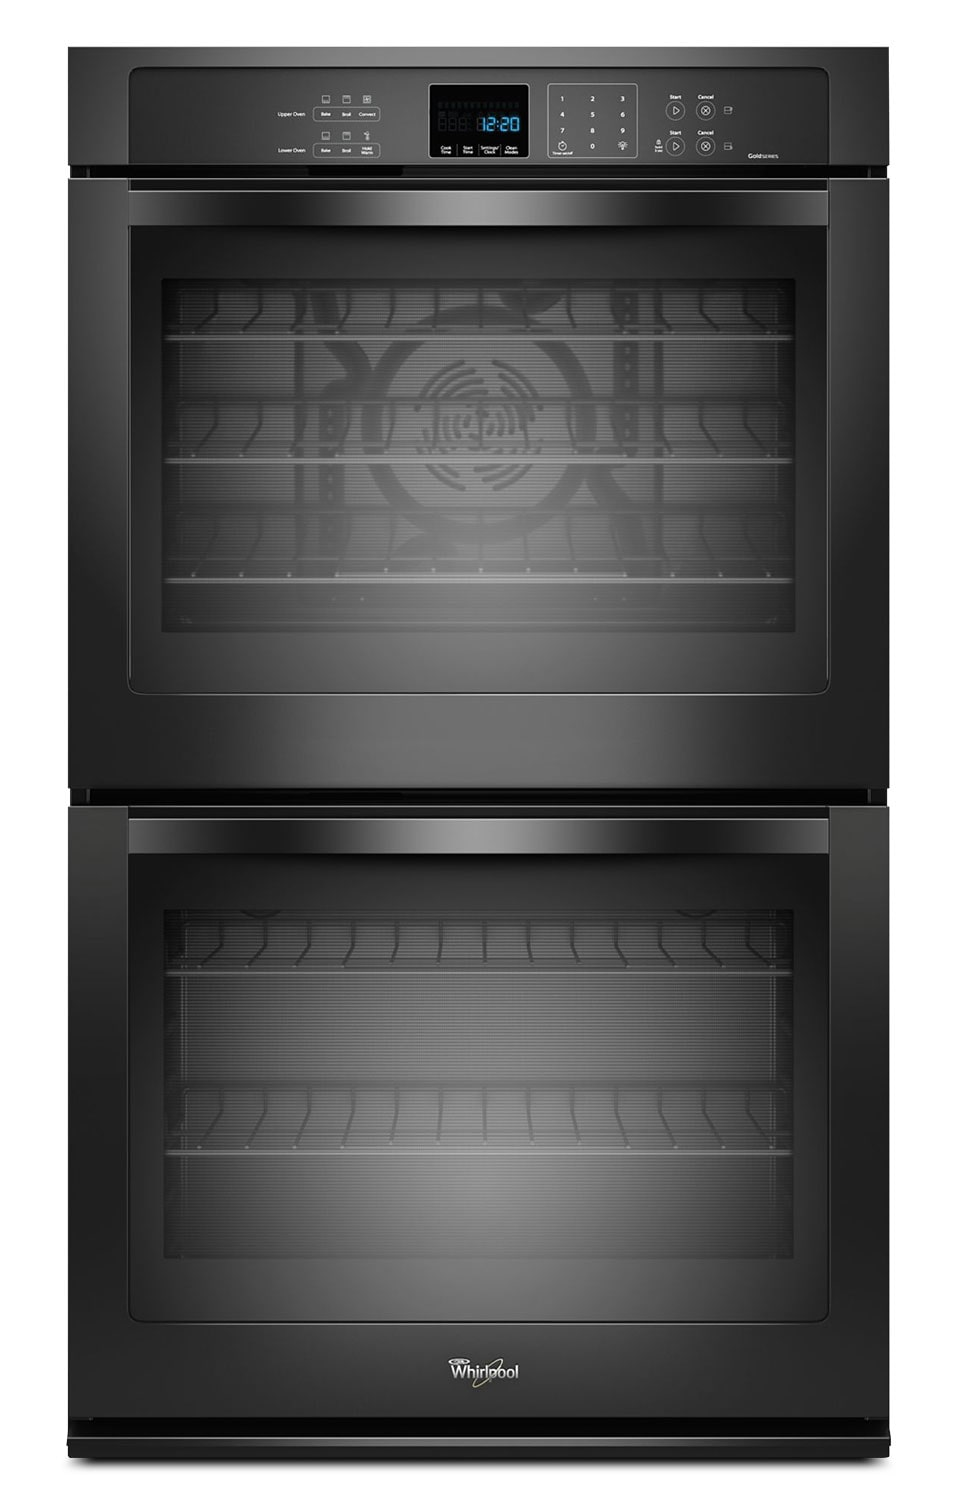 Whirlpool Black Electric Convection Double Wall Oven (10.0 Cu. Ft.) - WOD93EC0AB